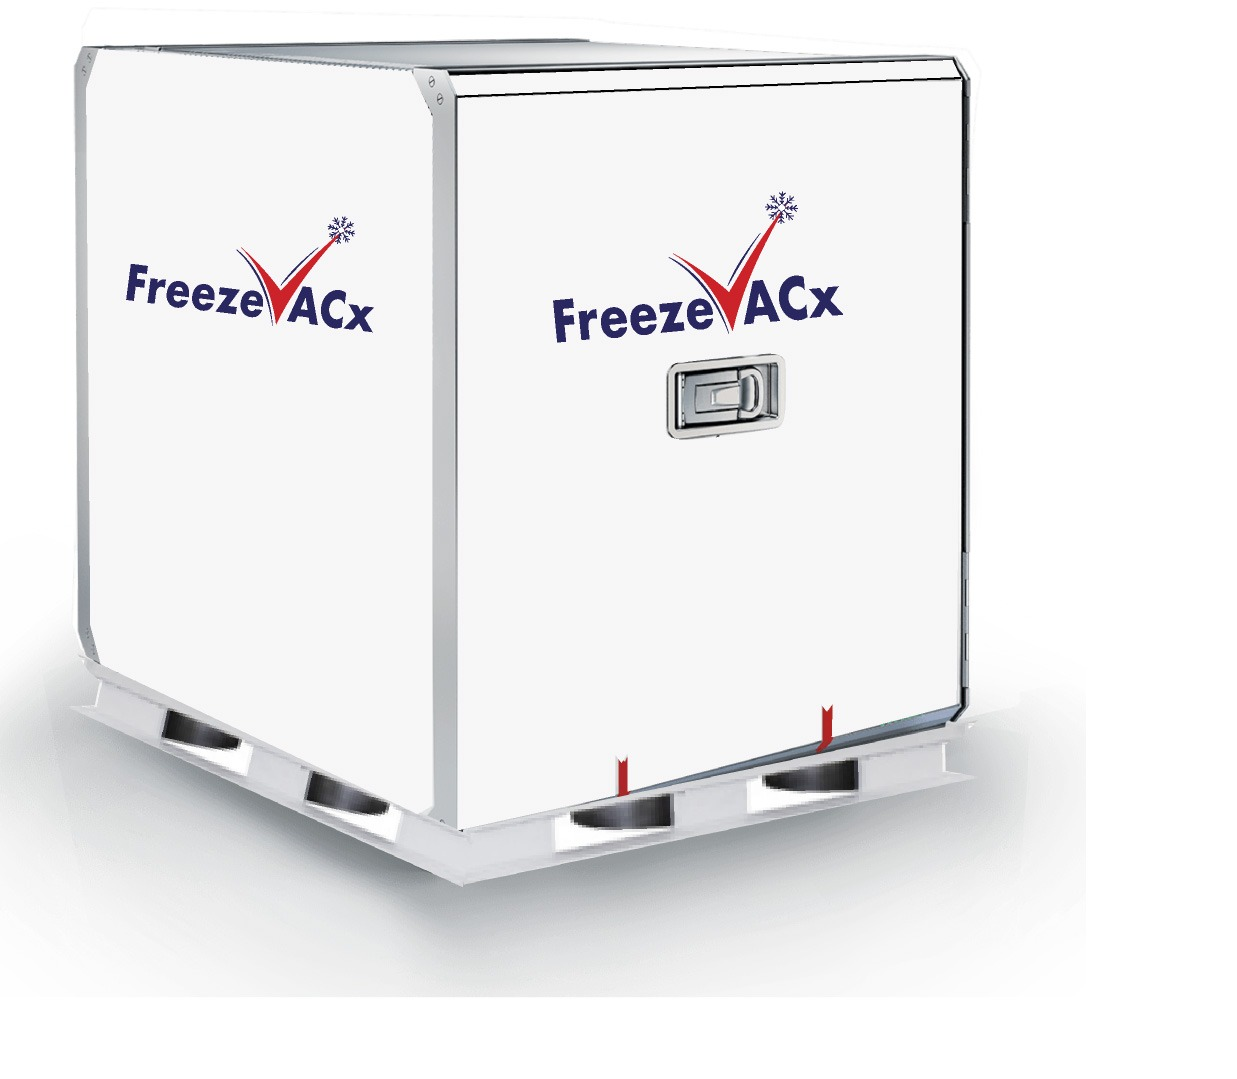 Freezevacx Introduces Vaccine Freezers for Aircrafts; Online Product Reviewer Calls It Creative and Innovative.